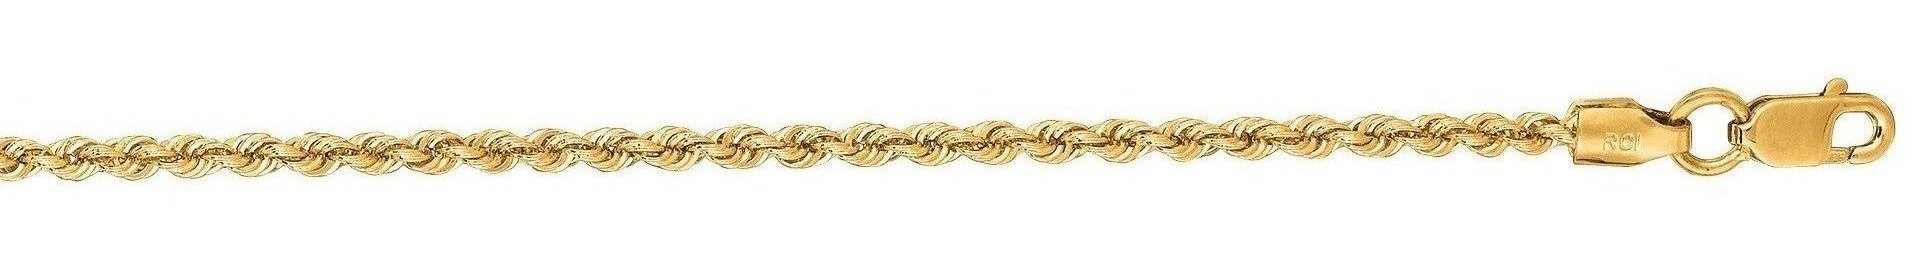 "24"" 14K Yellow Gold 2.0mm (0.08"") Polished Diamond Cut Solid Rope Chain w/ Lobster Clasp"